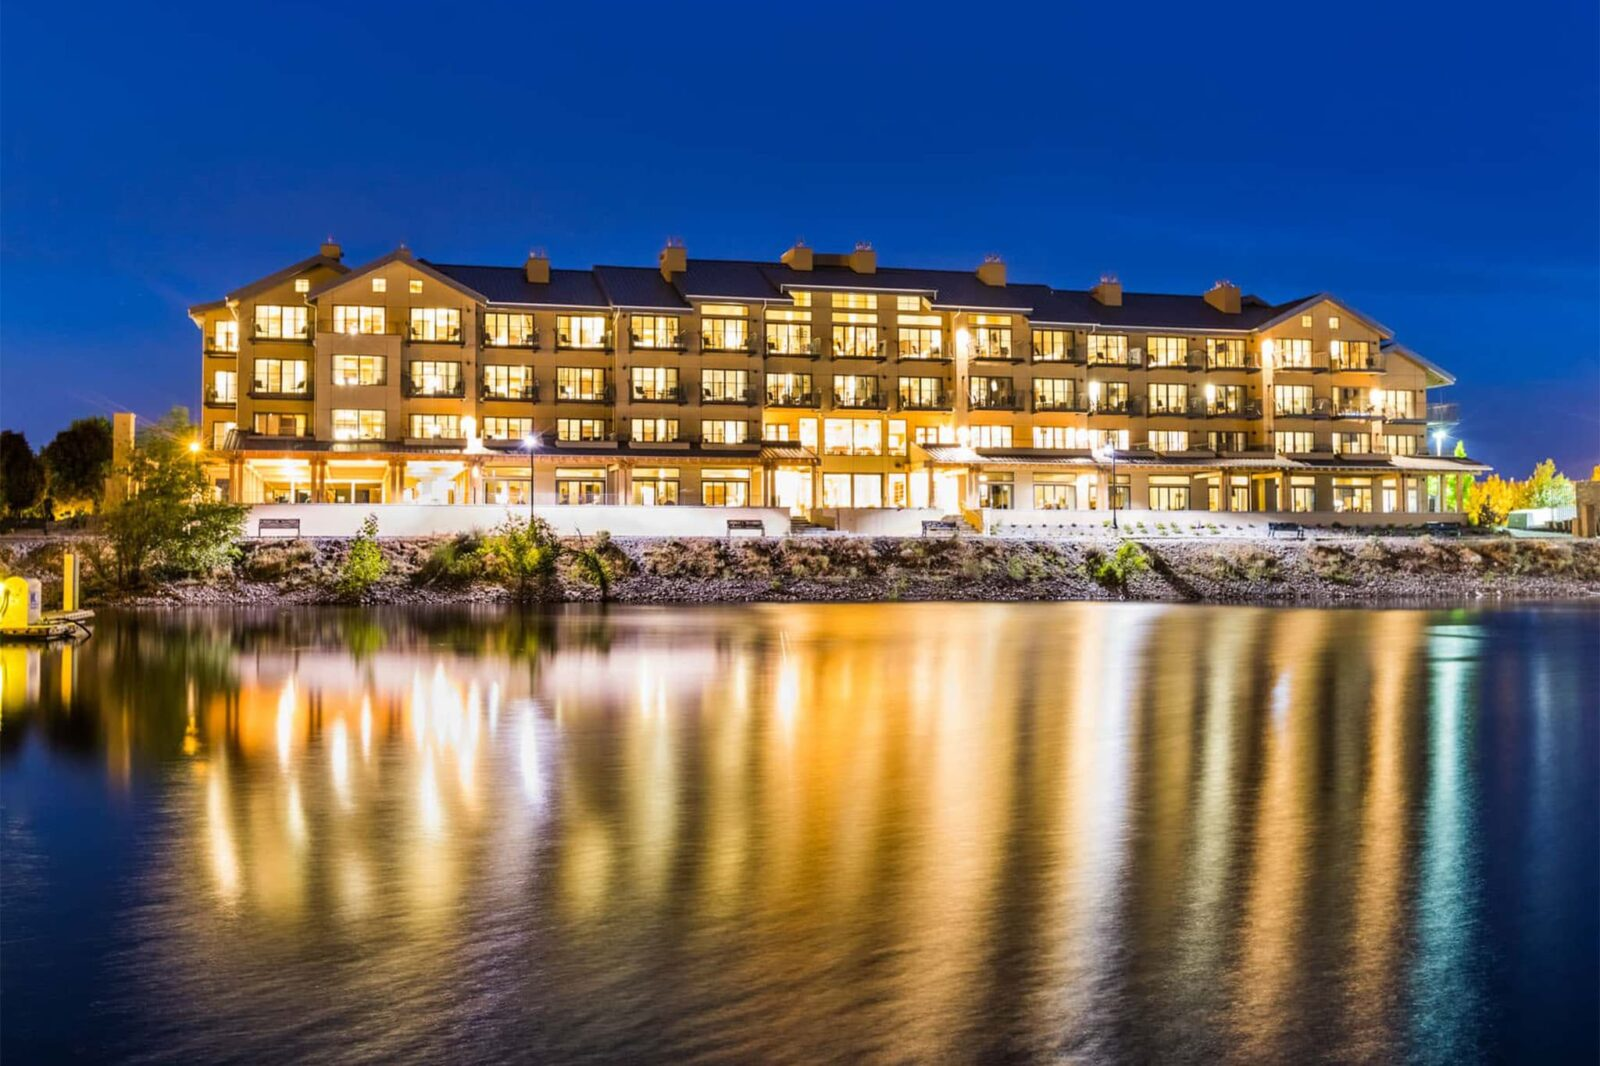 Night shot of The Lodge on the river